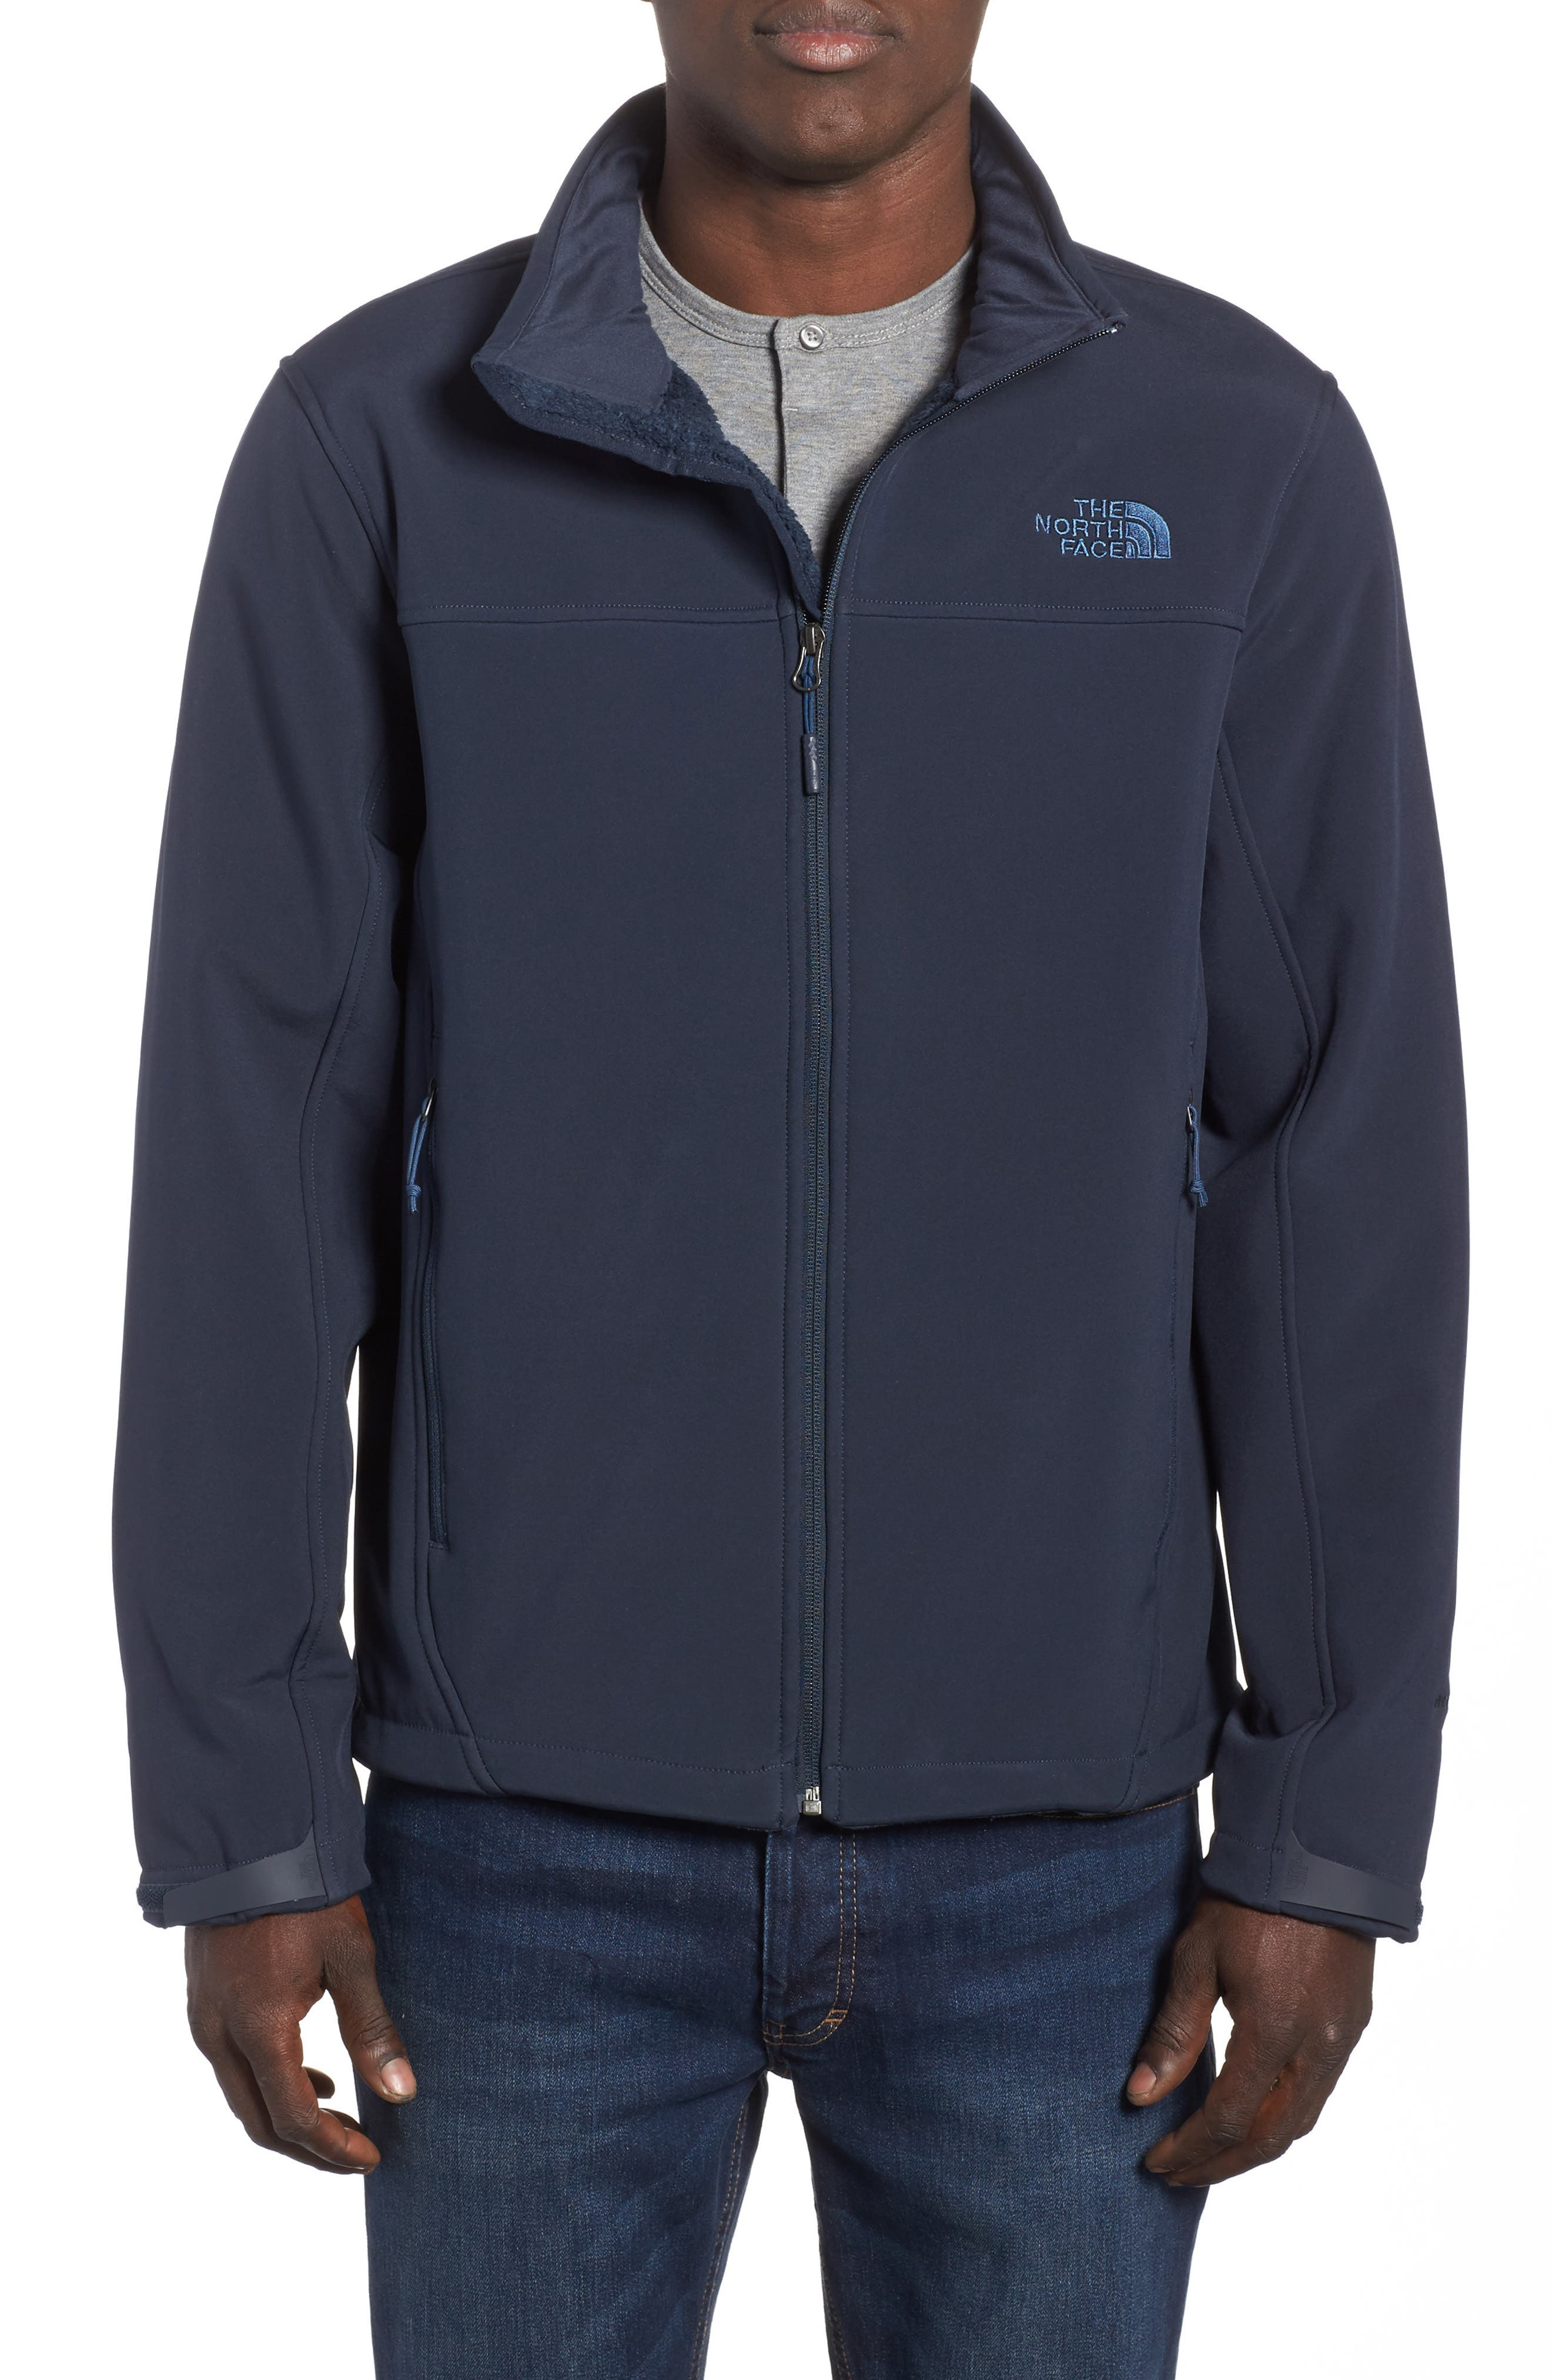 Alternate Image 1 Selected - The North Face 'Apex Chromium' Waterproof Thermal Jacket